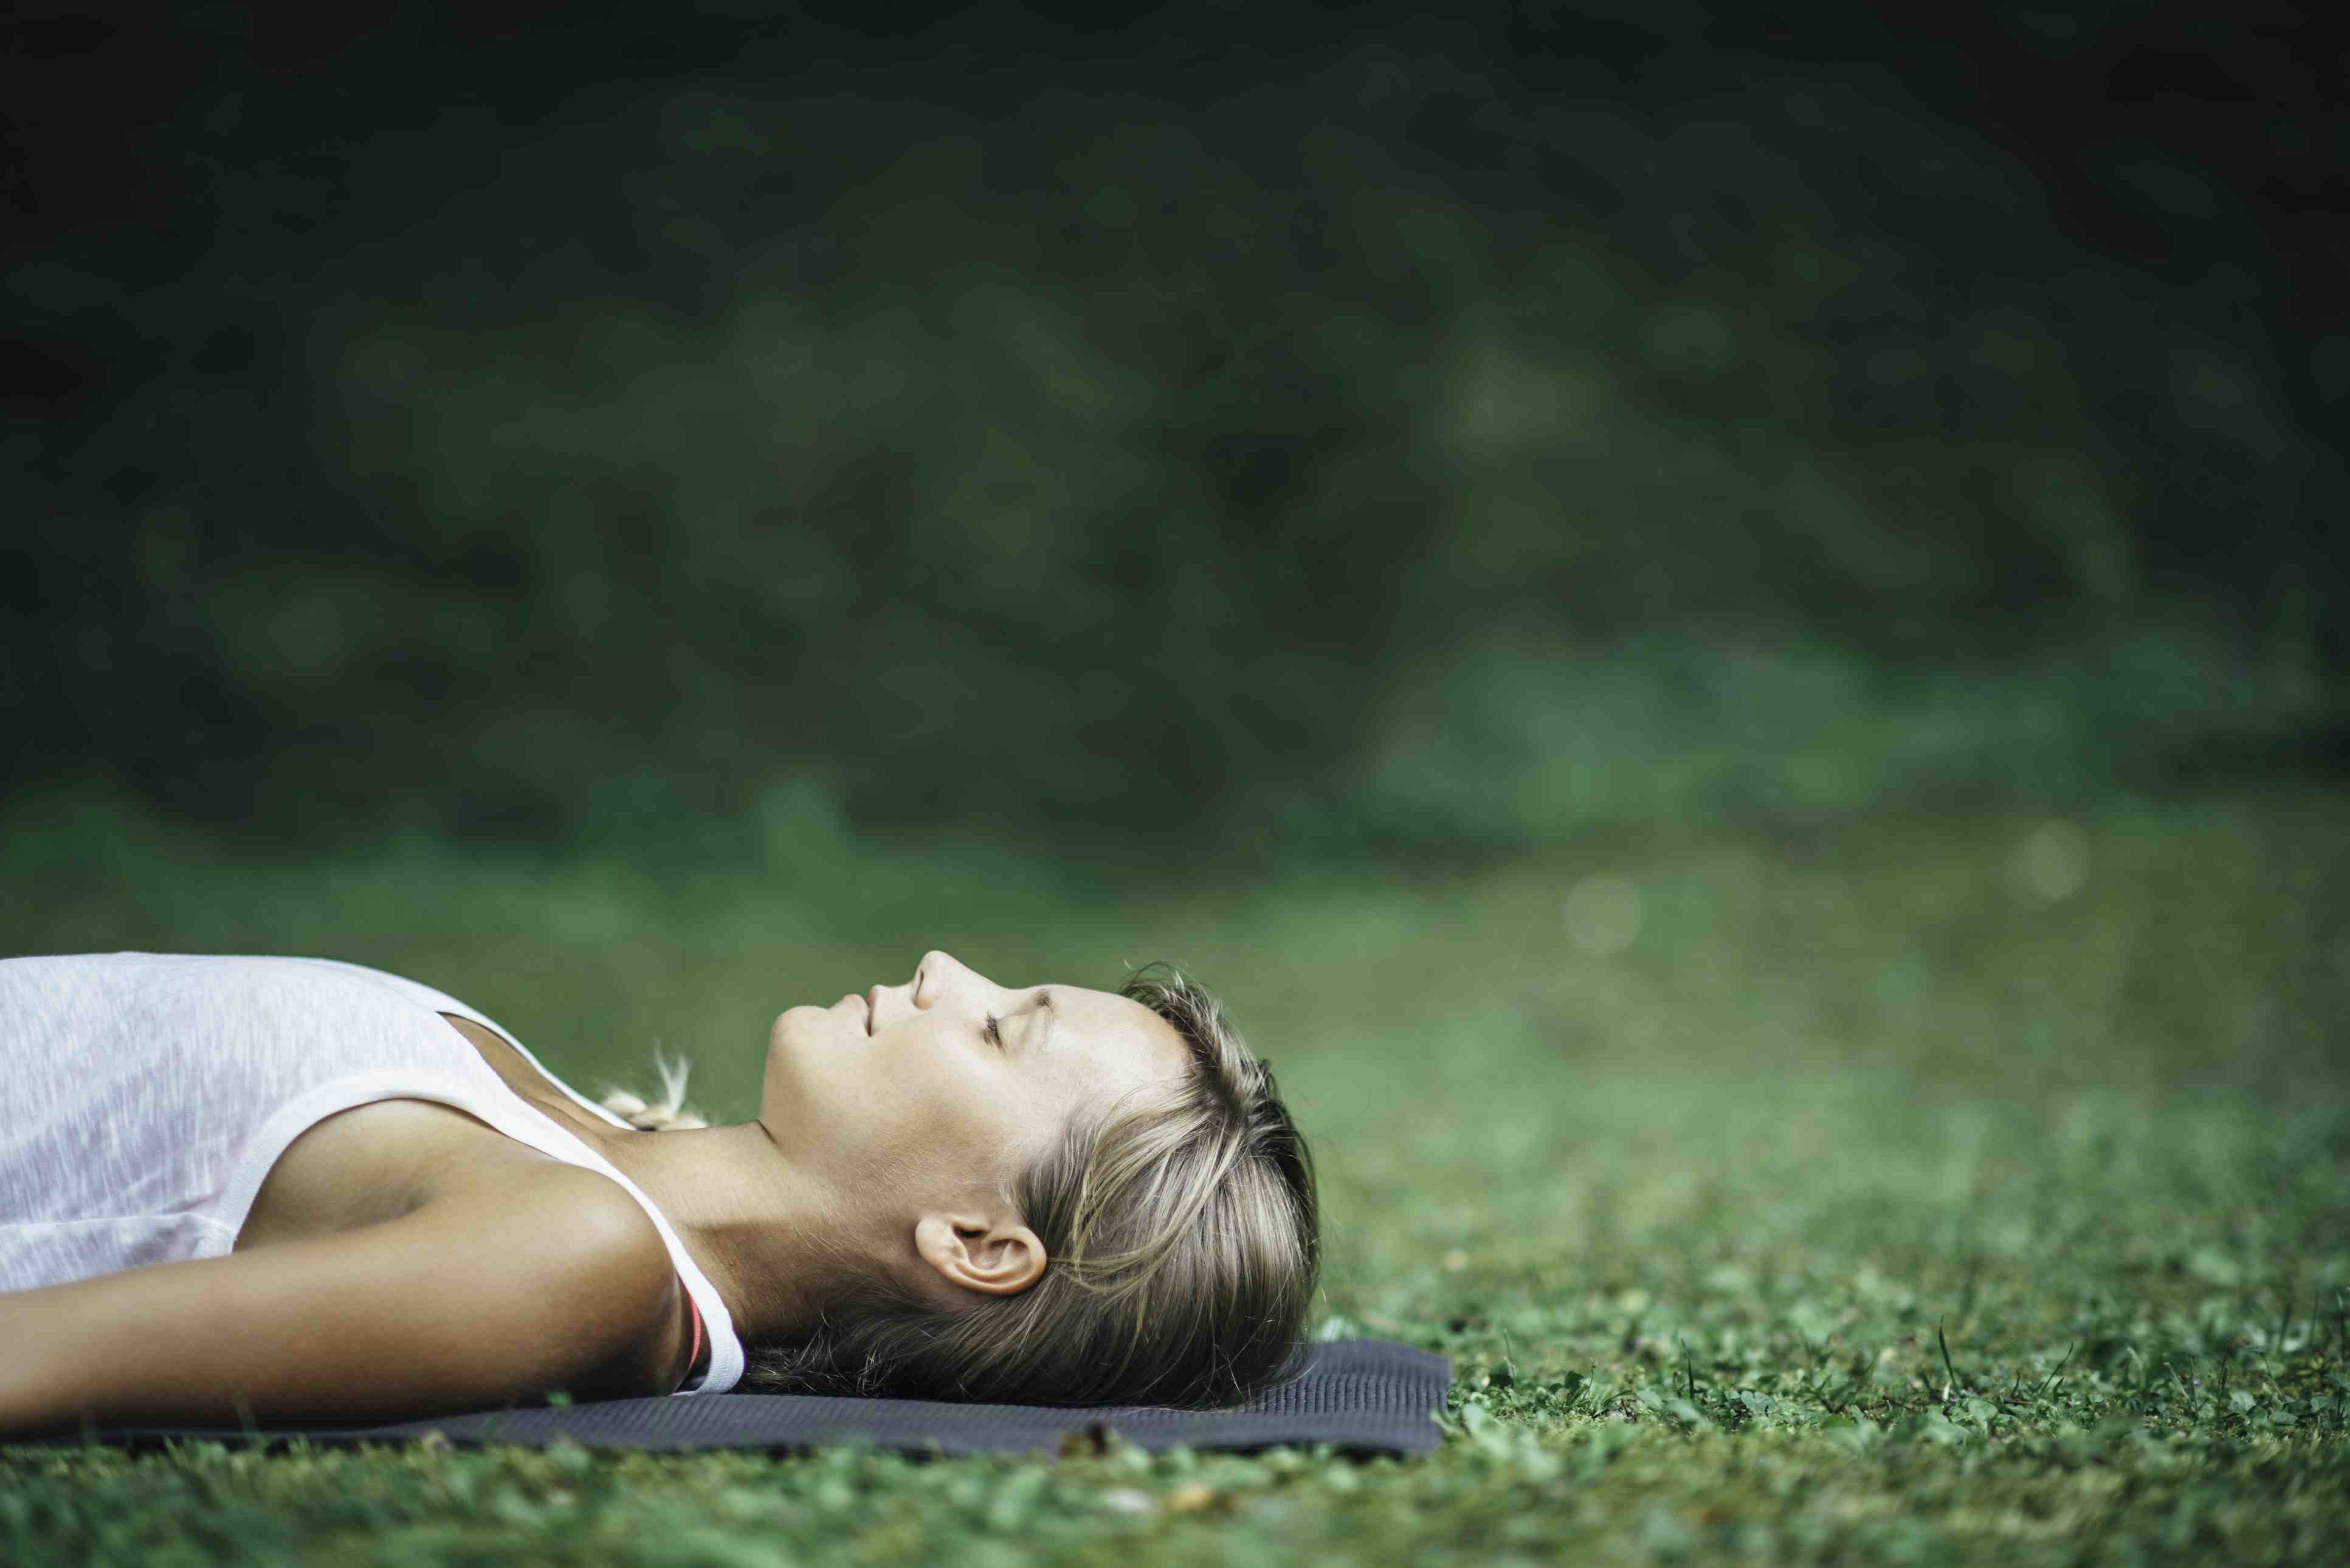 A woman relaxing on a yoga mat